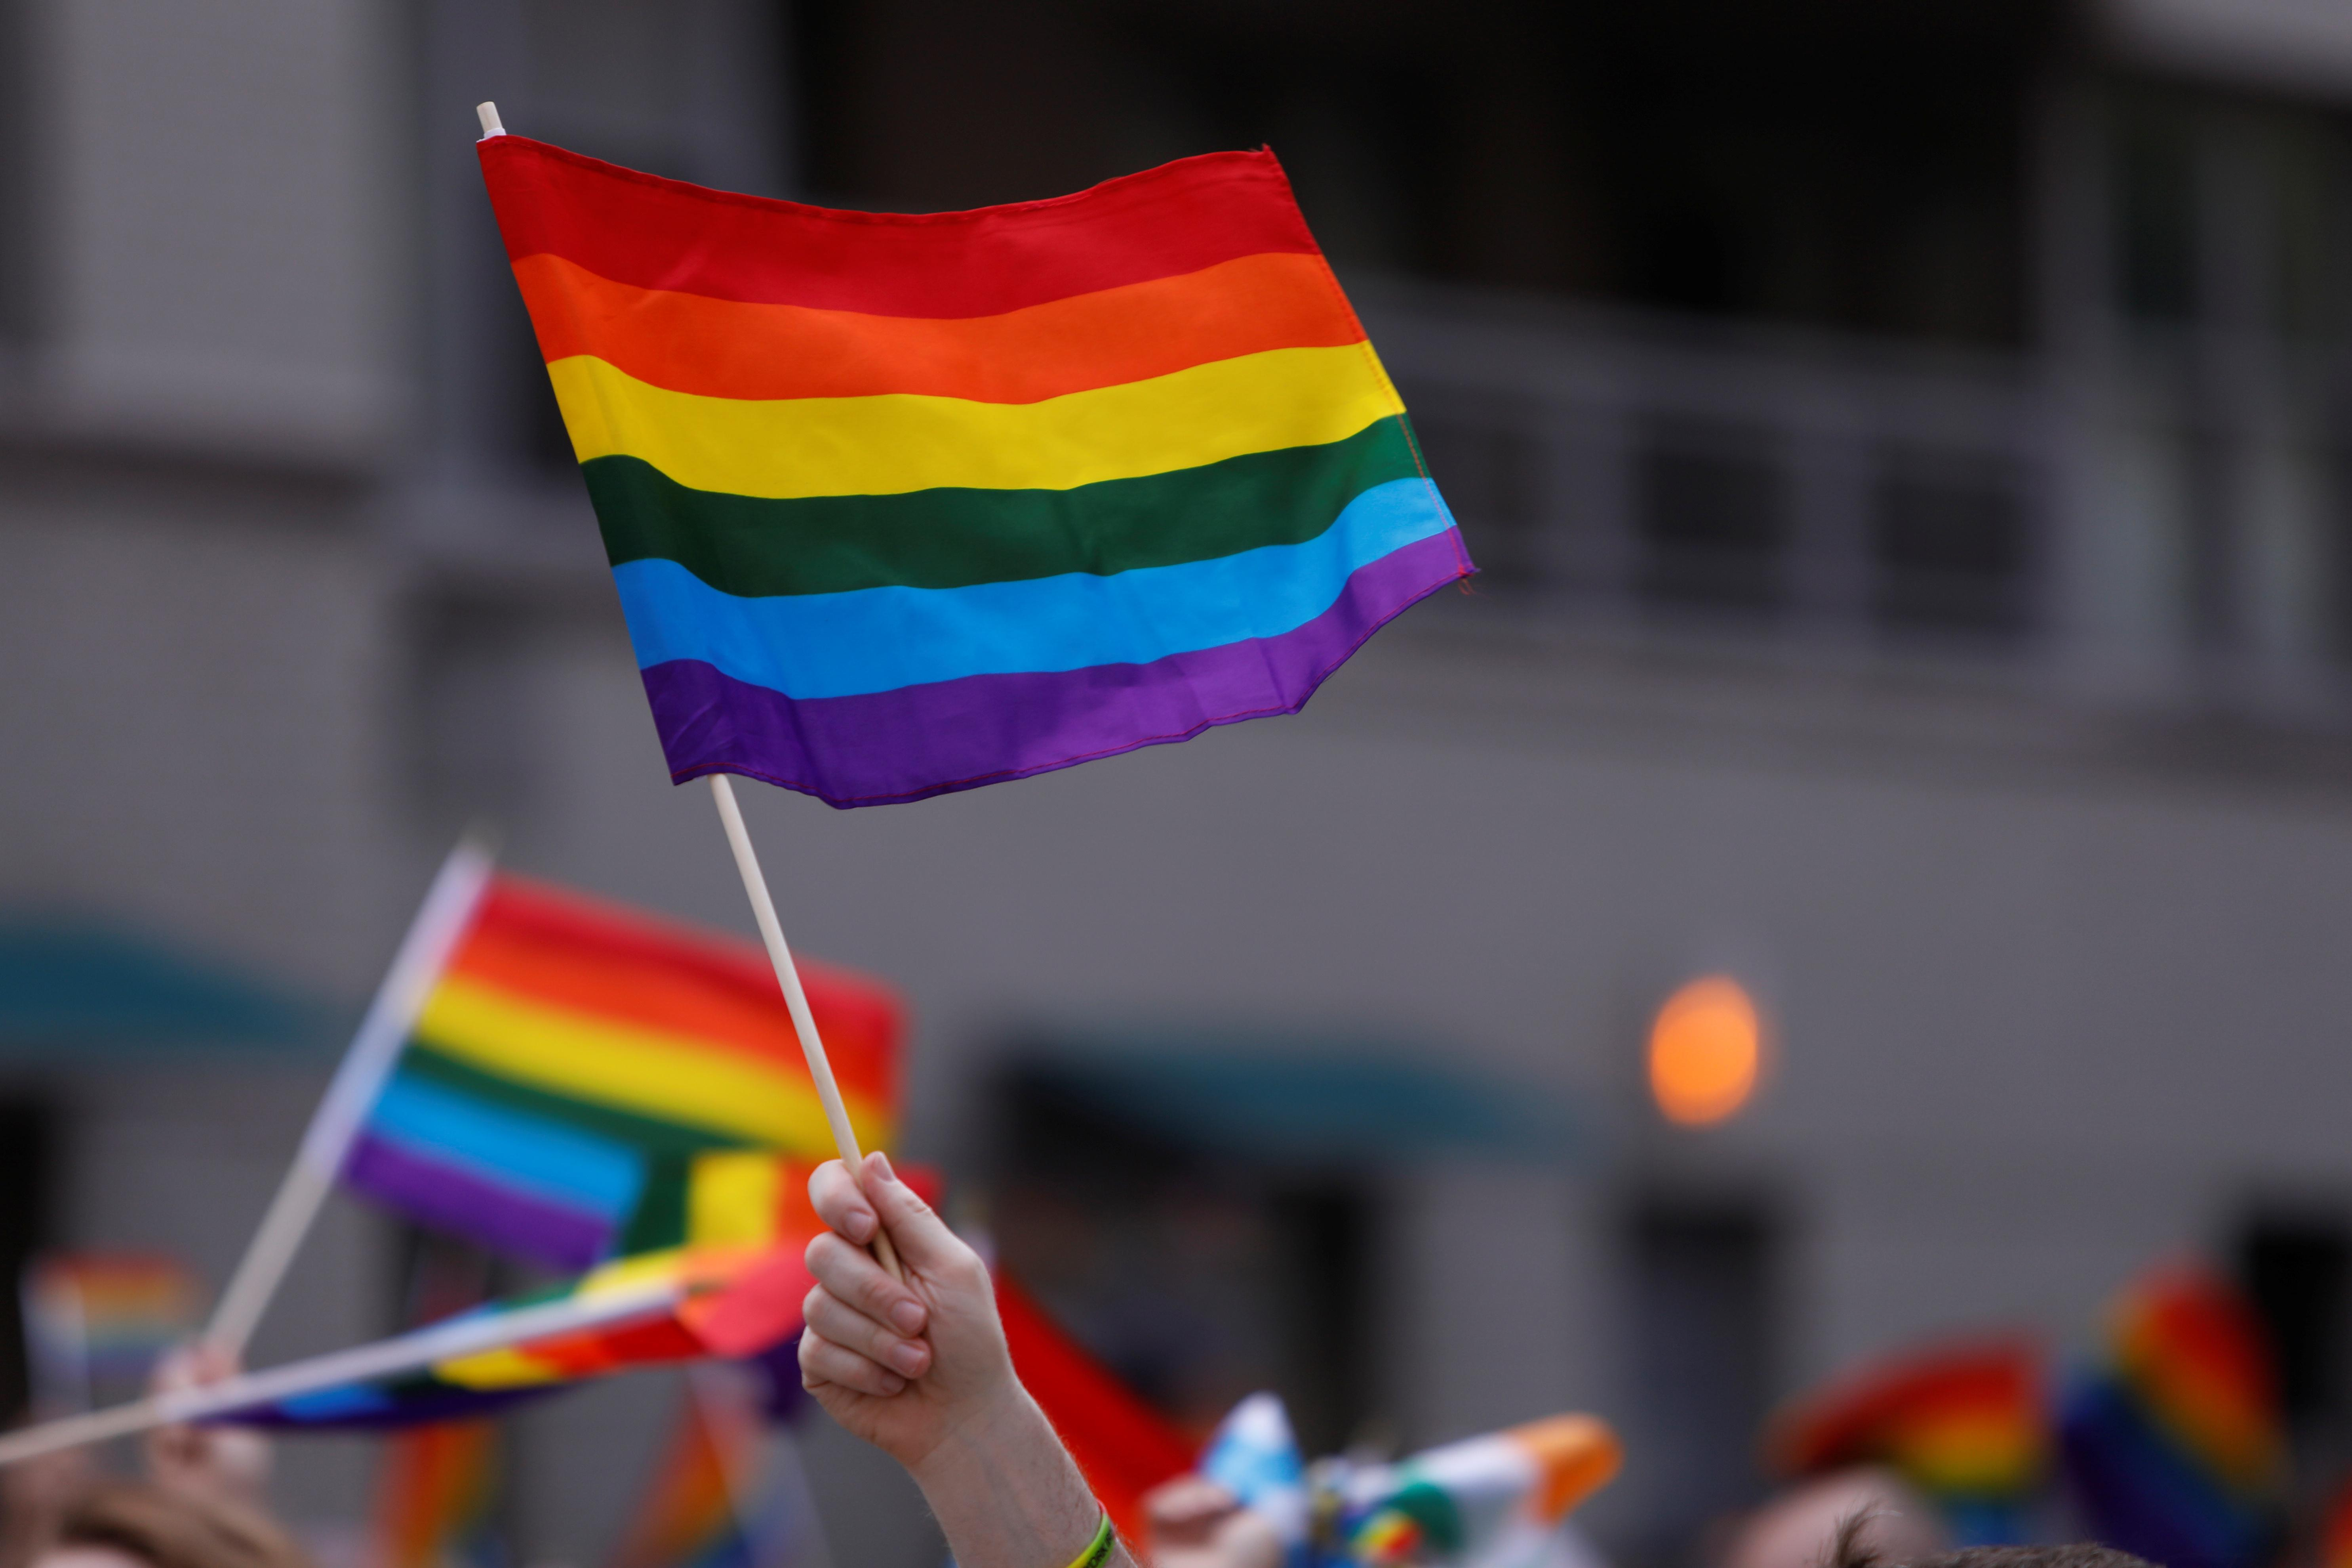 People wave rainbow flags during the 2018 New York City Pride Parade in  Manhattan, New York, U.S., June 24, 2018. REUTERS/Andrew Kelly